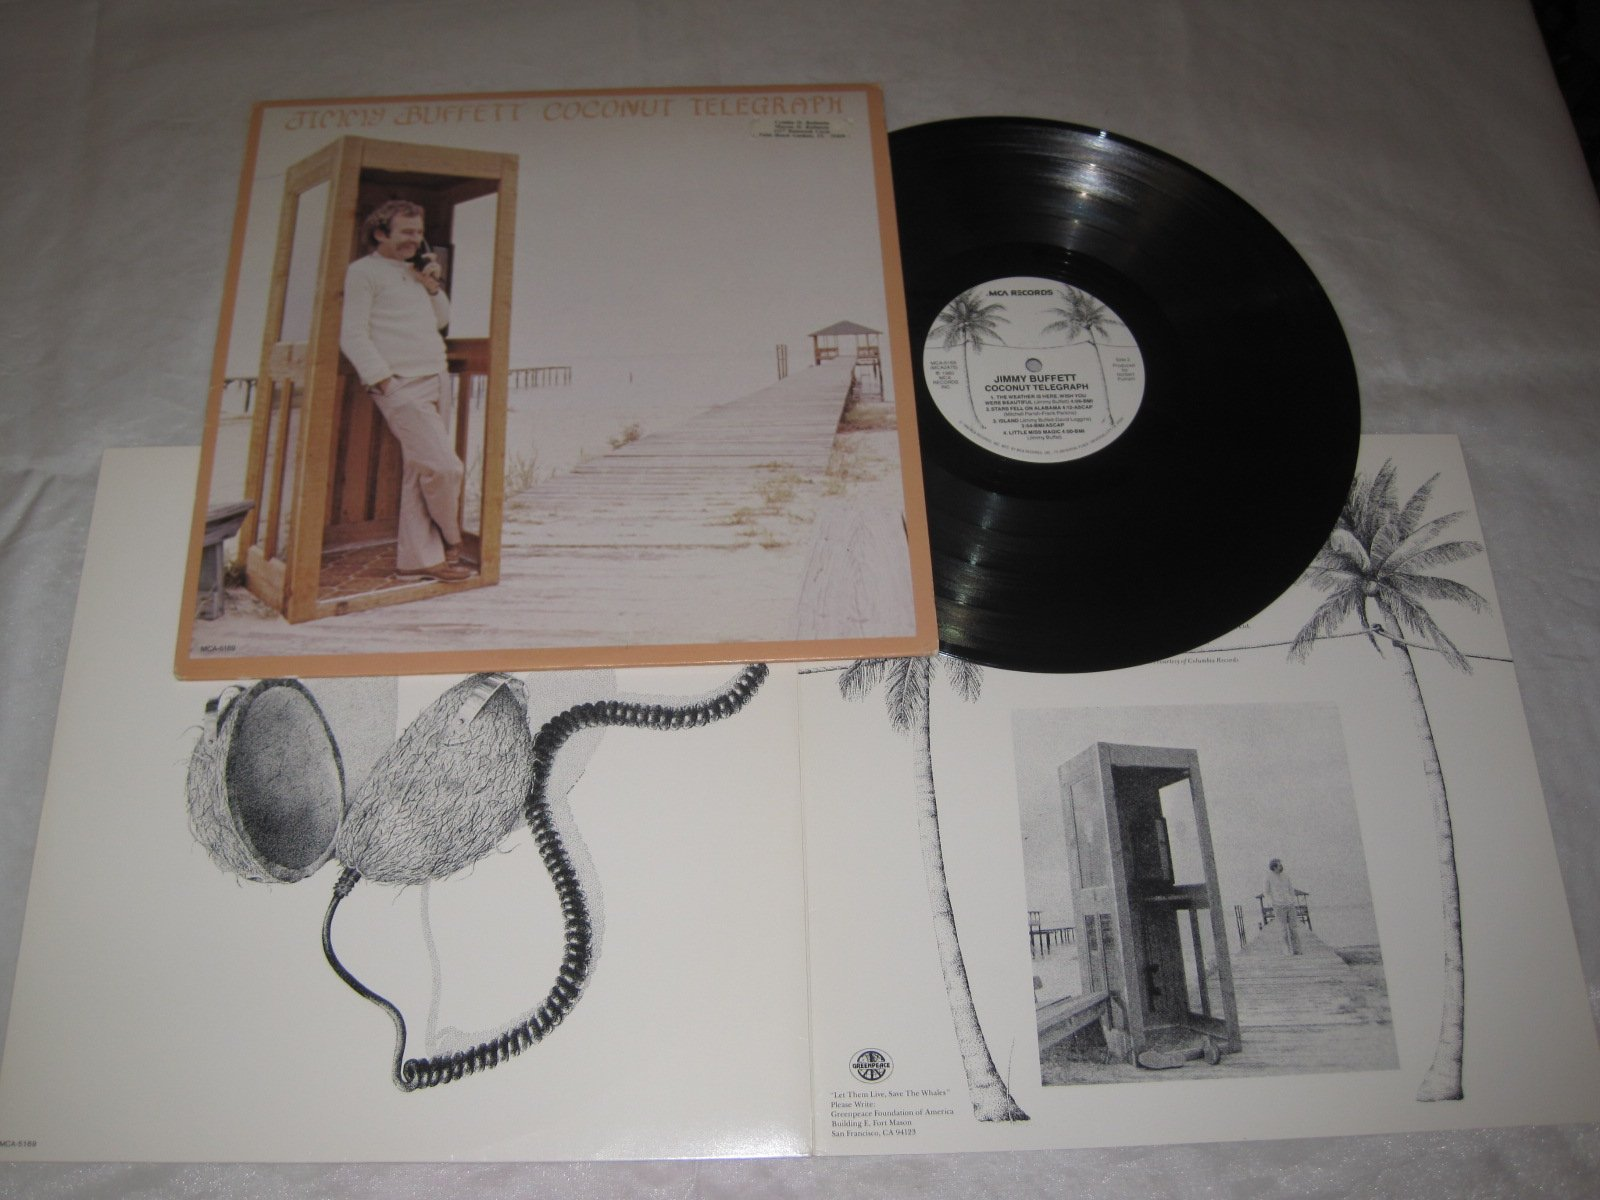 Jimmy Buffett - Coconut Telegraph - Vinyl LP by MCA